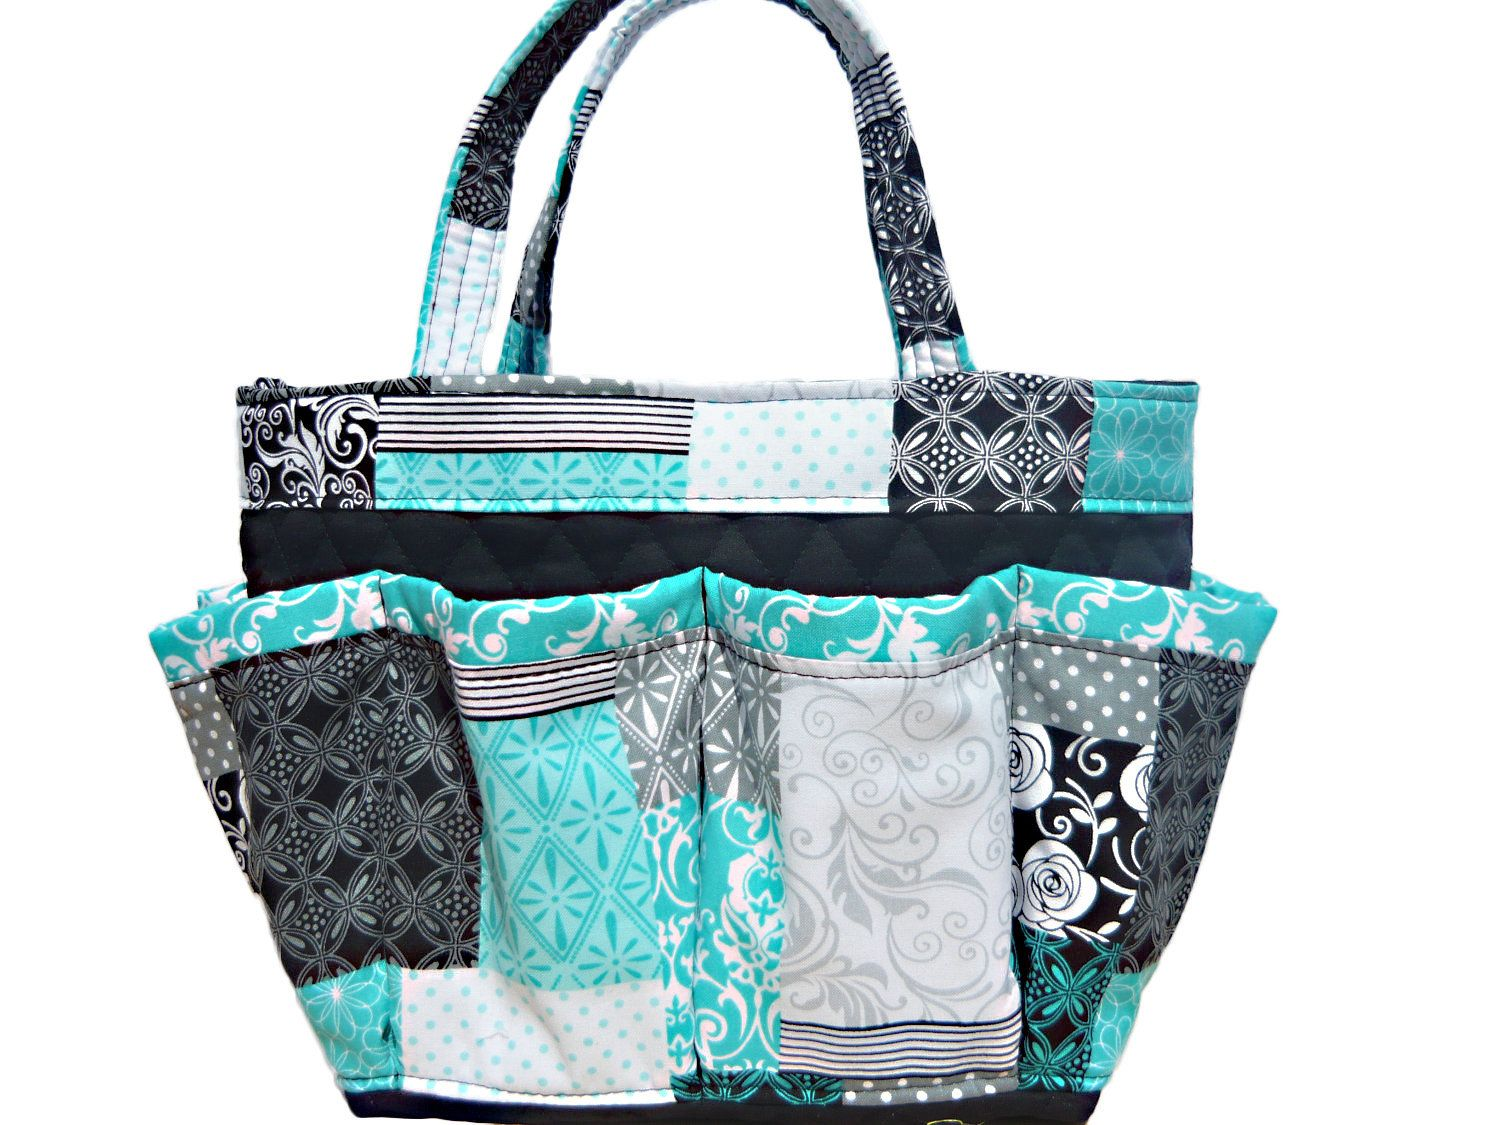 Free Bingo Tote Bag Patterns To Sew Yahoo Image Search Results